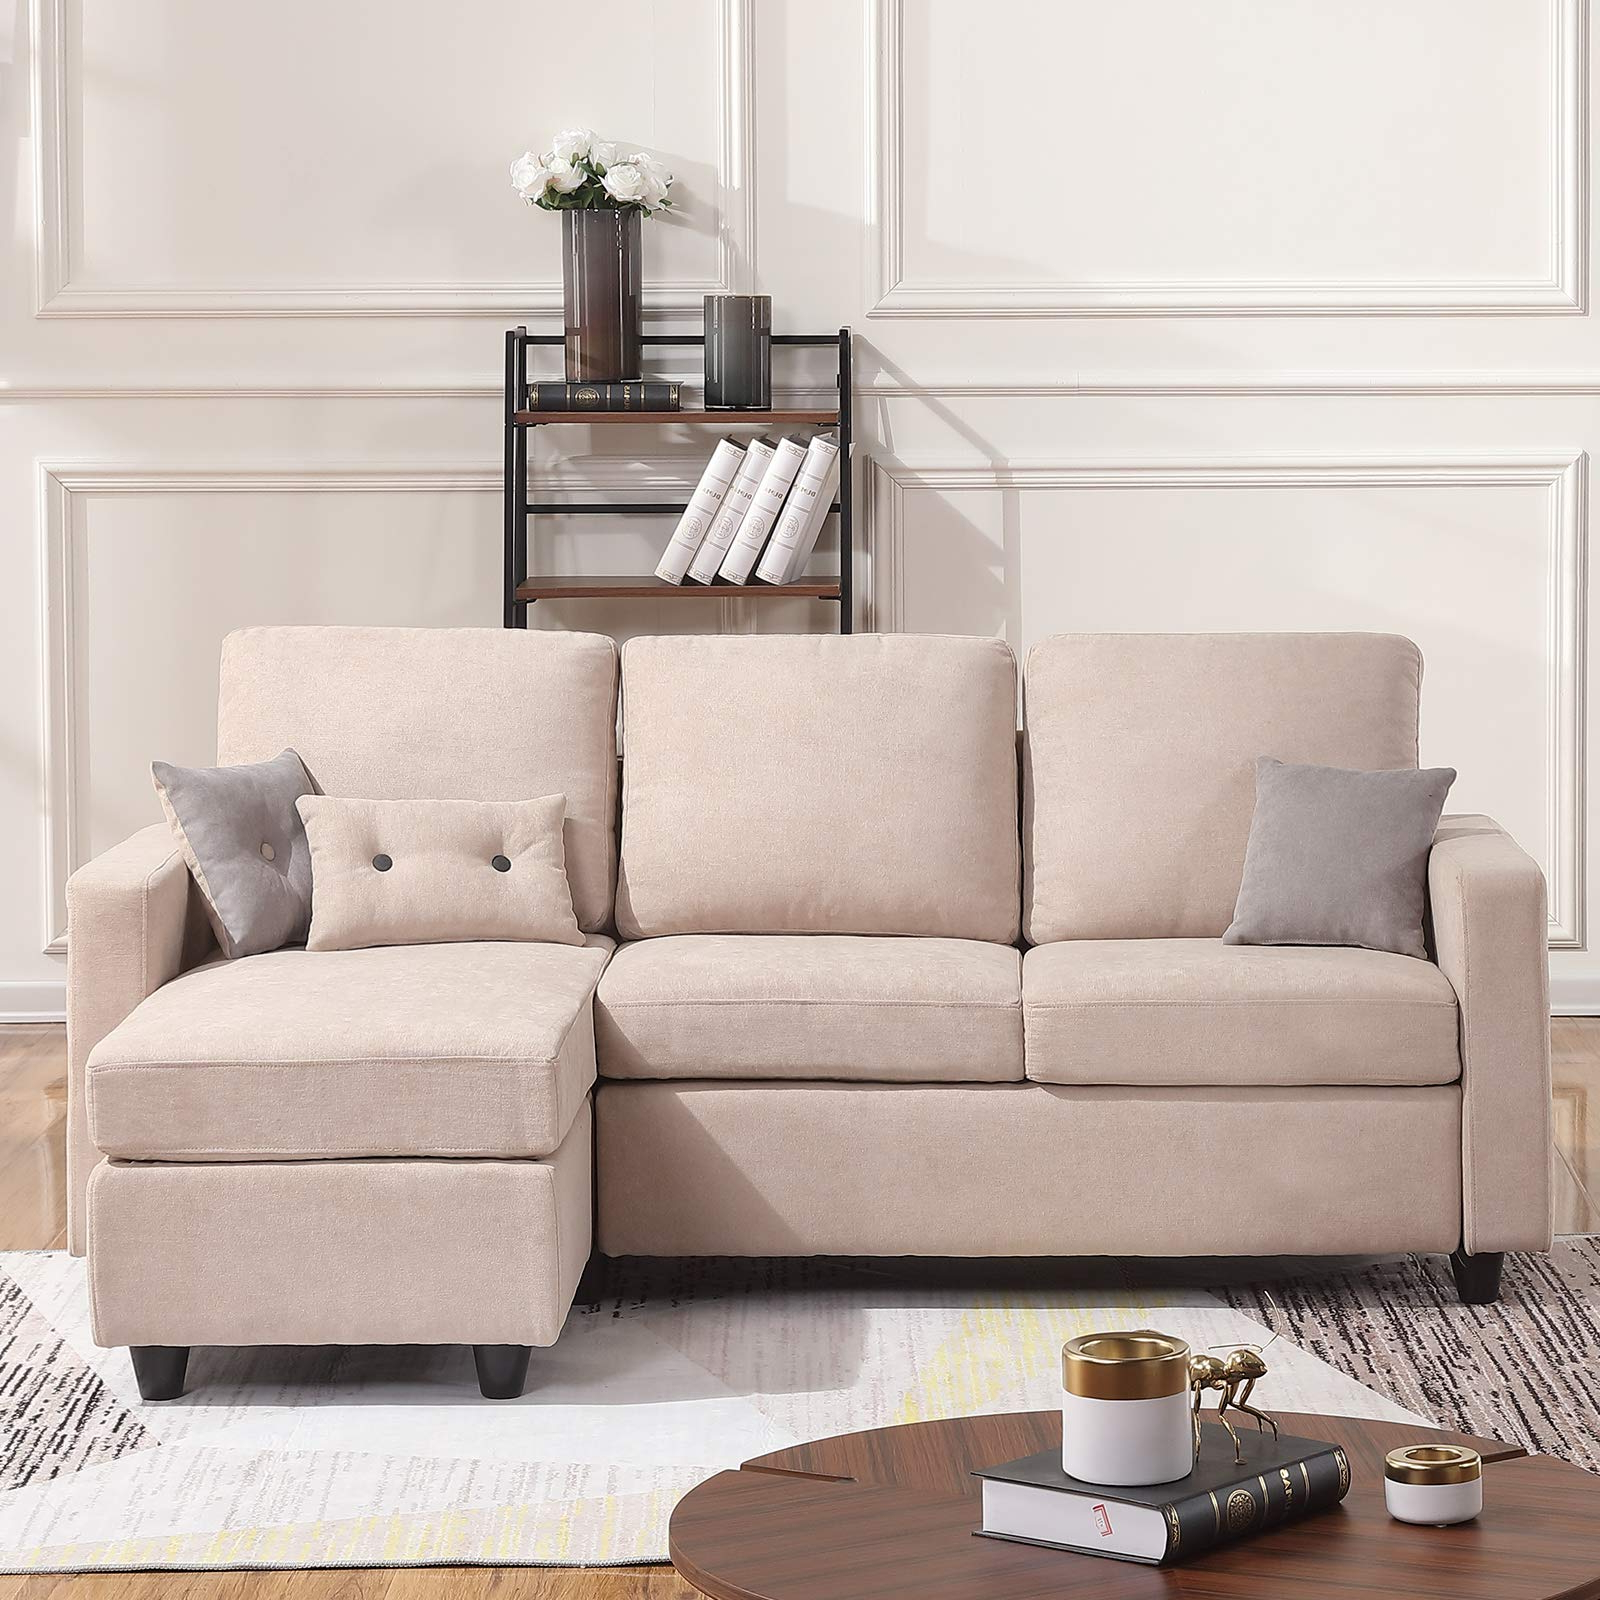 Favorite Owego L Shaped Sectional Sofas Intended For Honbay Convertible Sectional Sofa Couch Modern Linen (View 6 of 25)